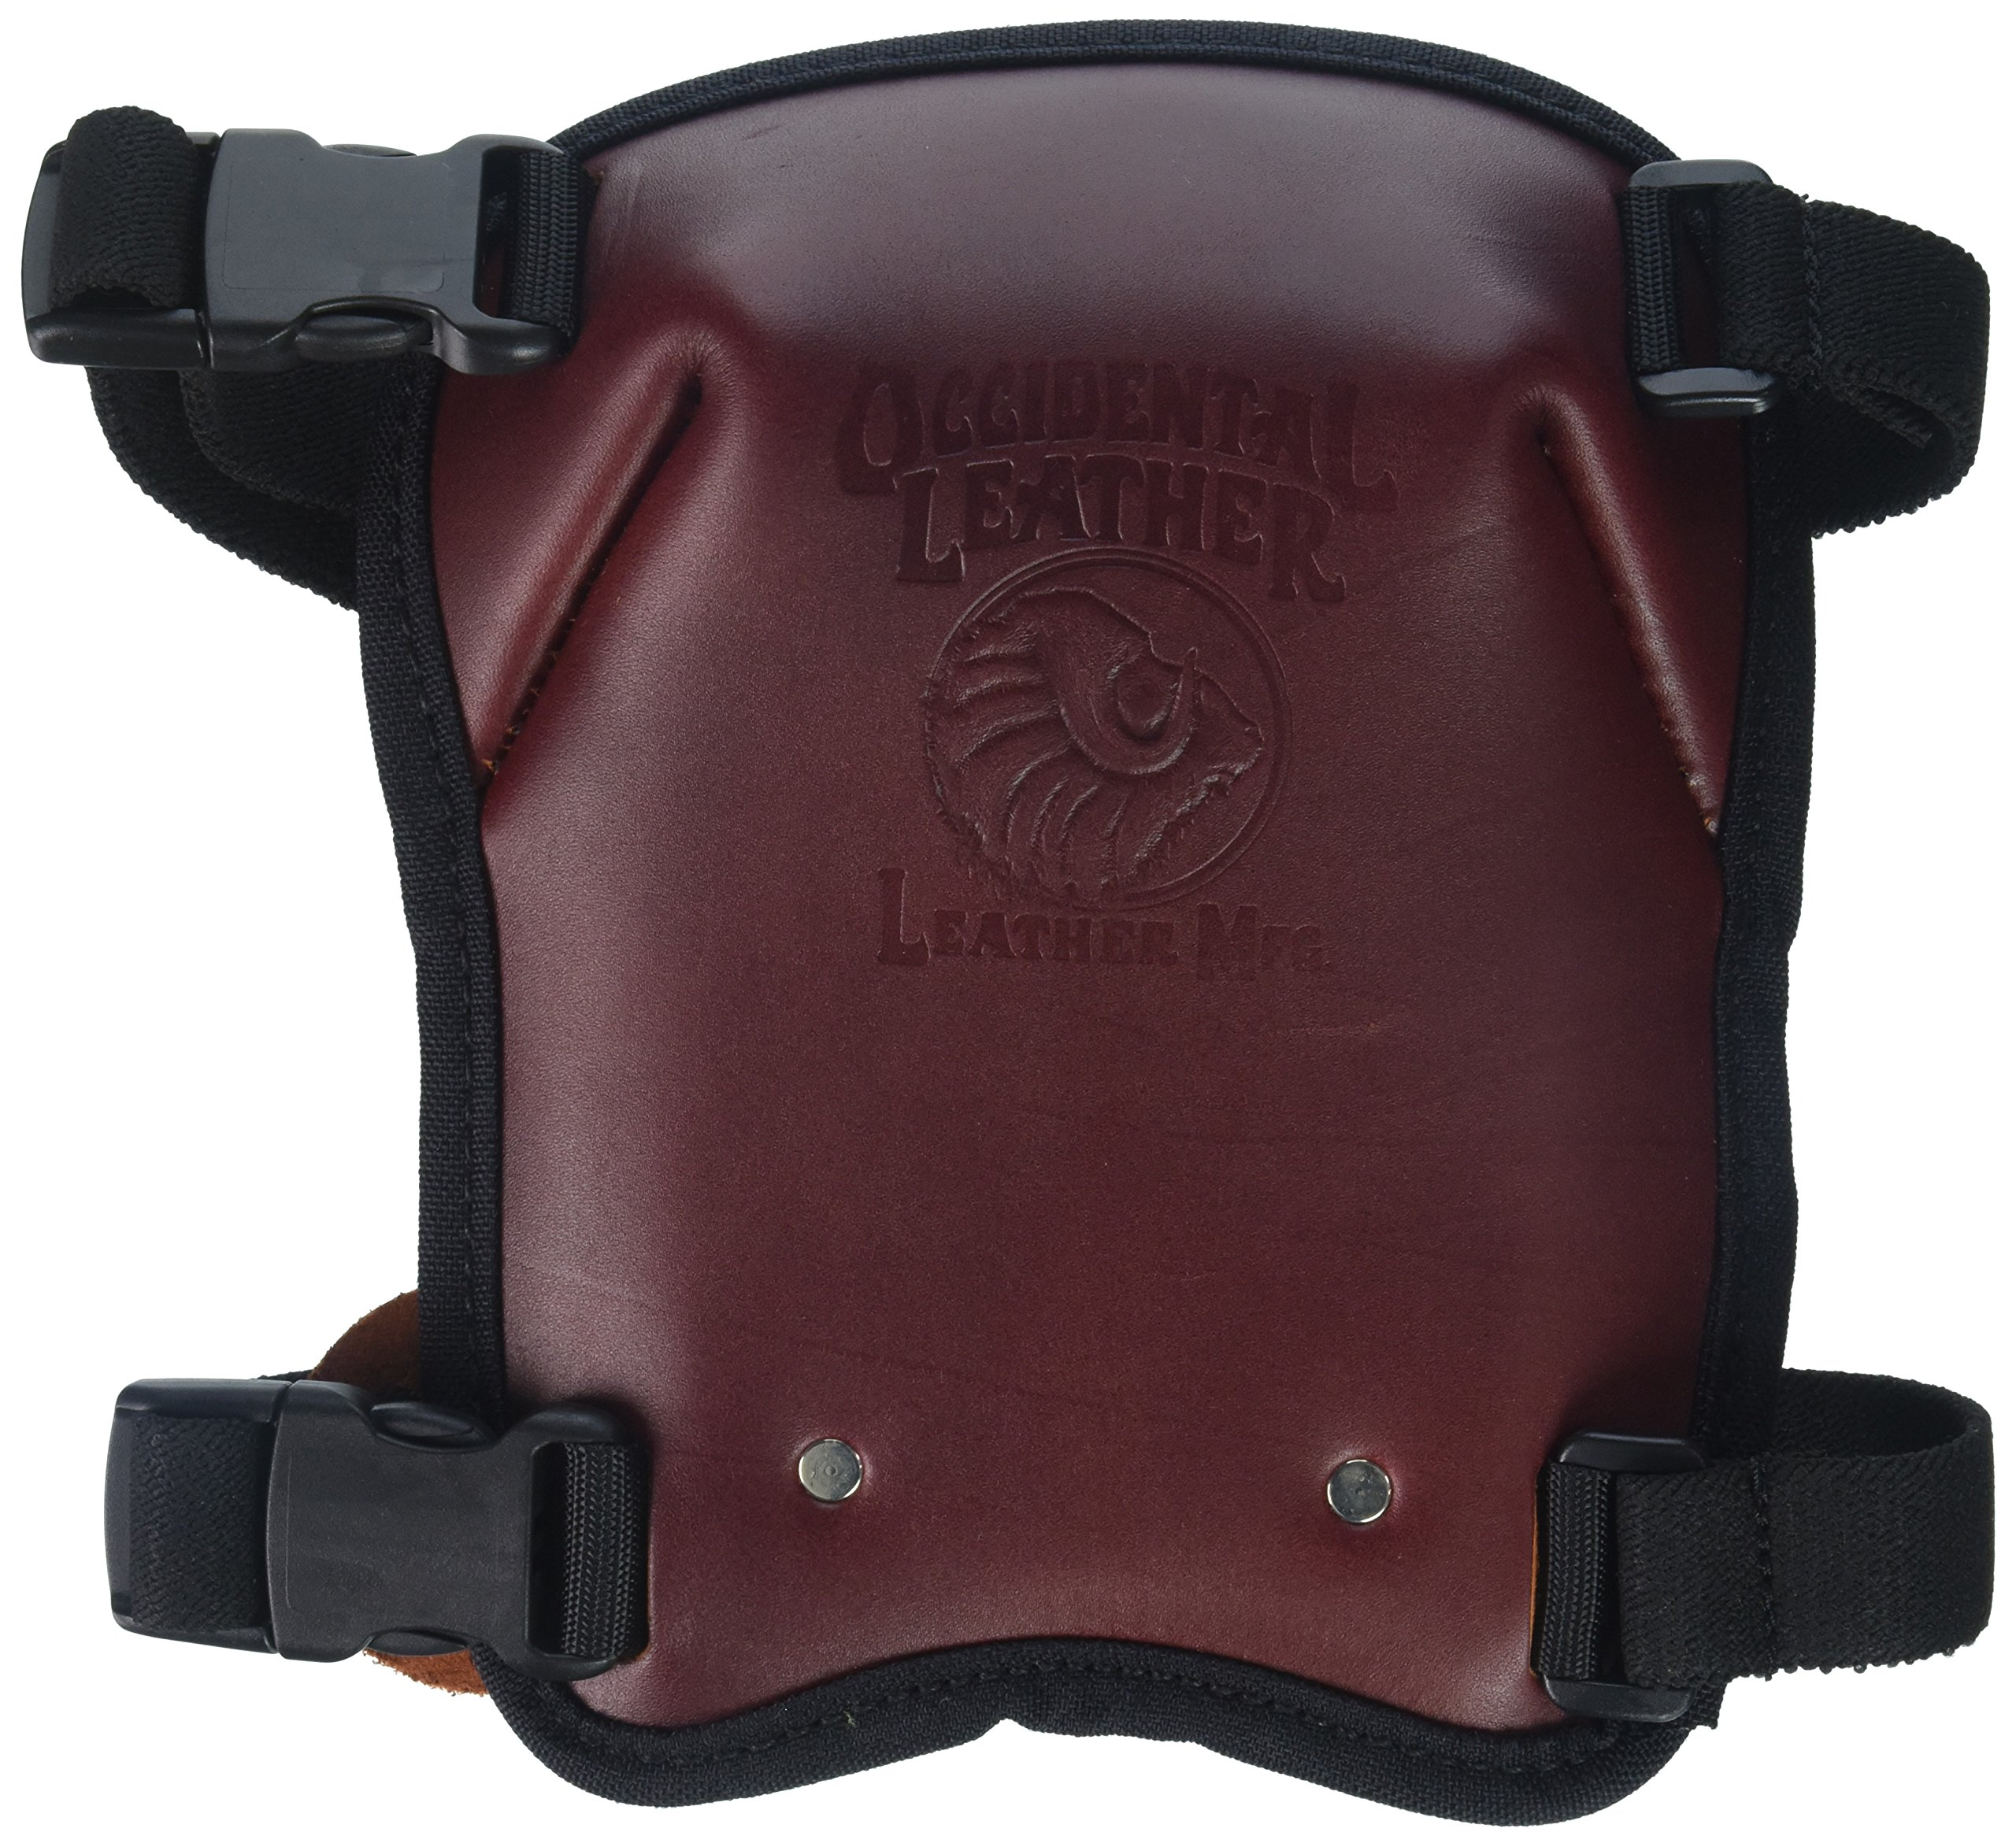 Occidental Leather 5022 Occidental Leather Knee Pads